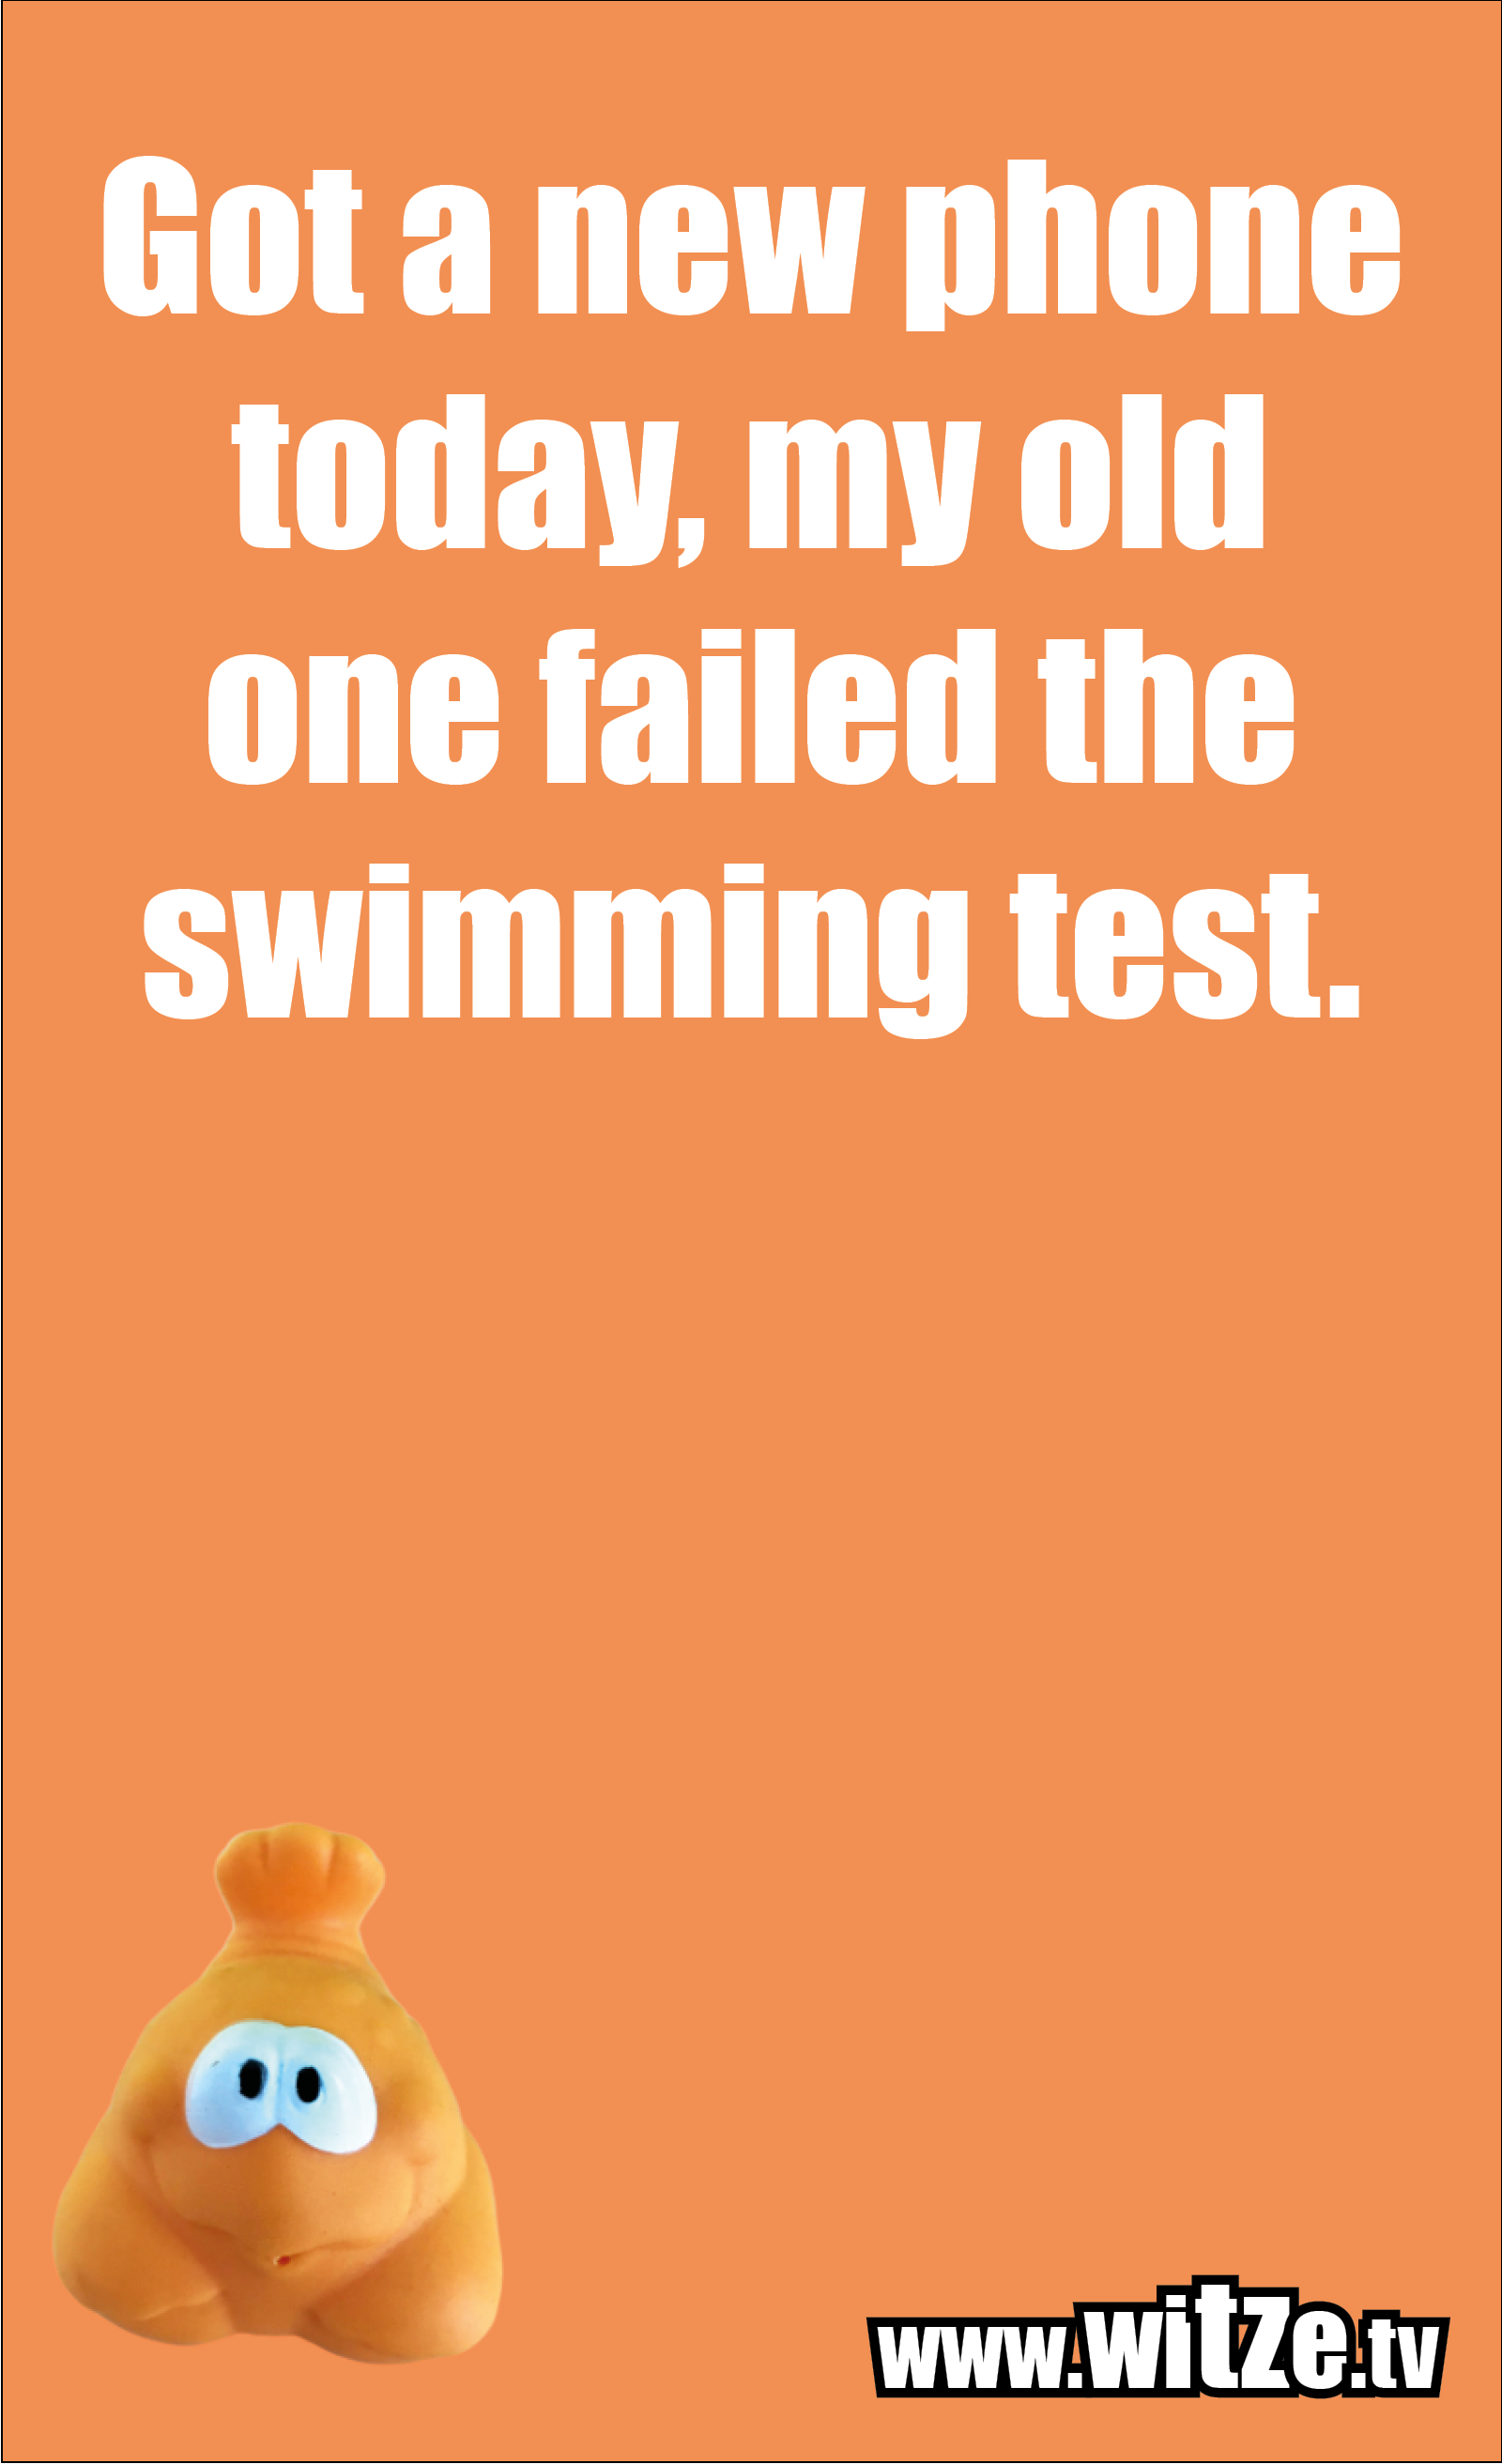 Funny sayings… Got a new phone today, my old one failed the swimming test.